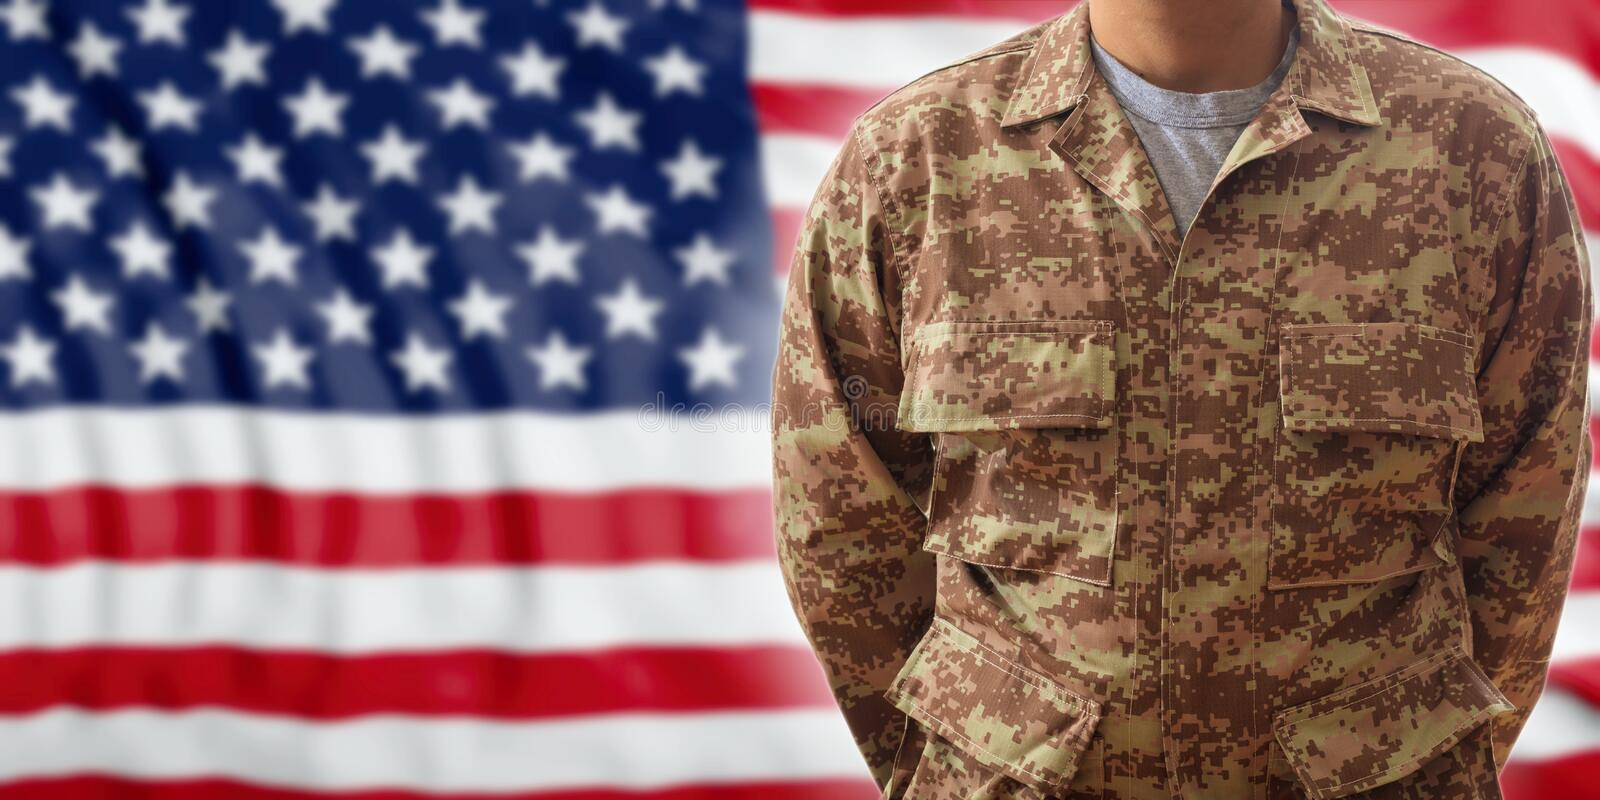 Soldier in an American military digital pattern uniform, standing on a USA flag background. Soldier in a USA military digital pattern uniform, standing on an royalty free stock image